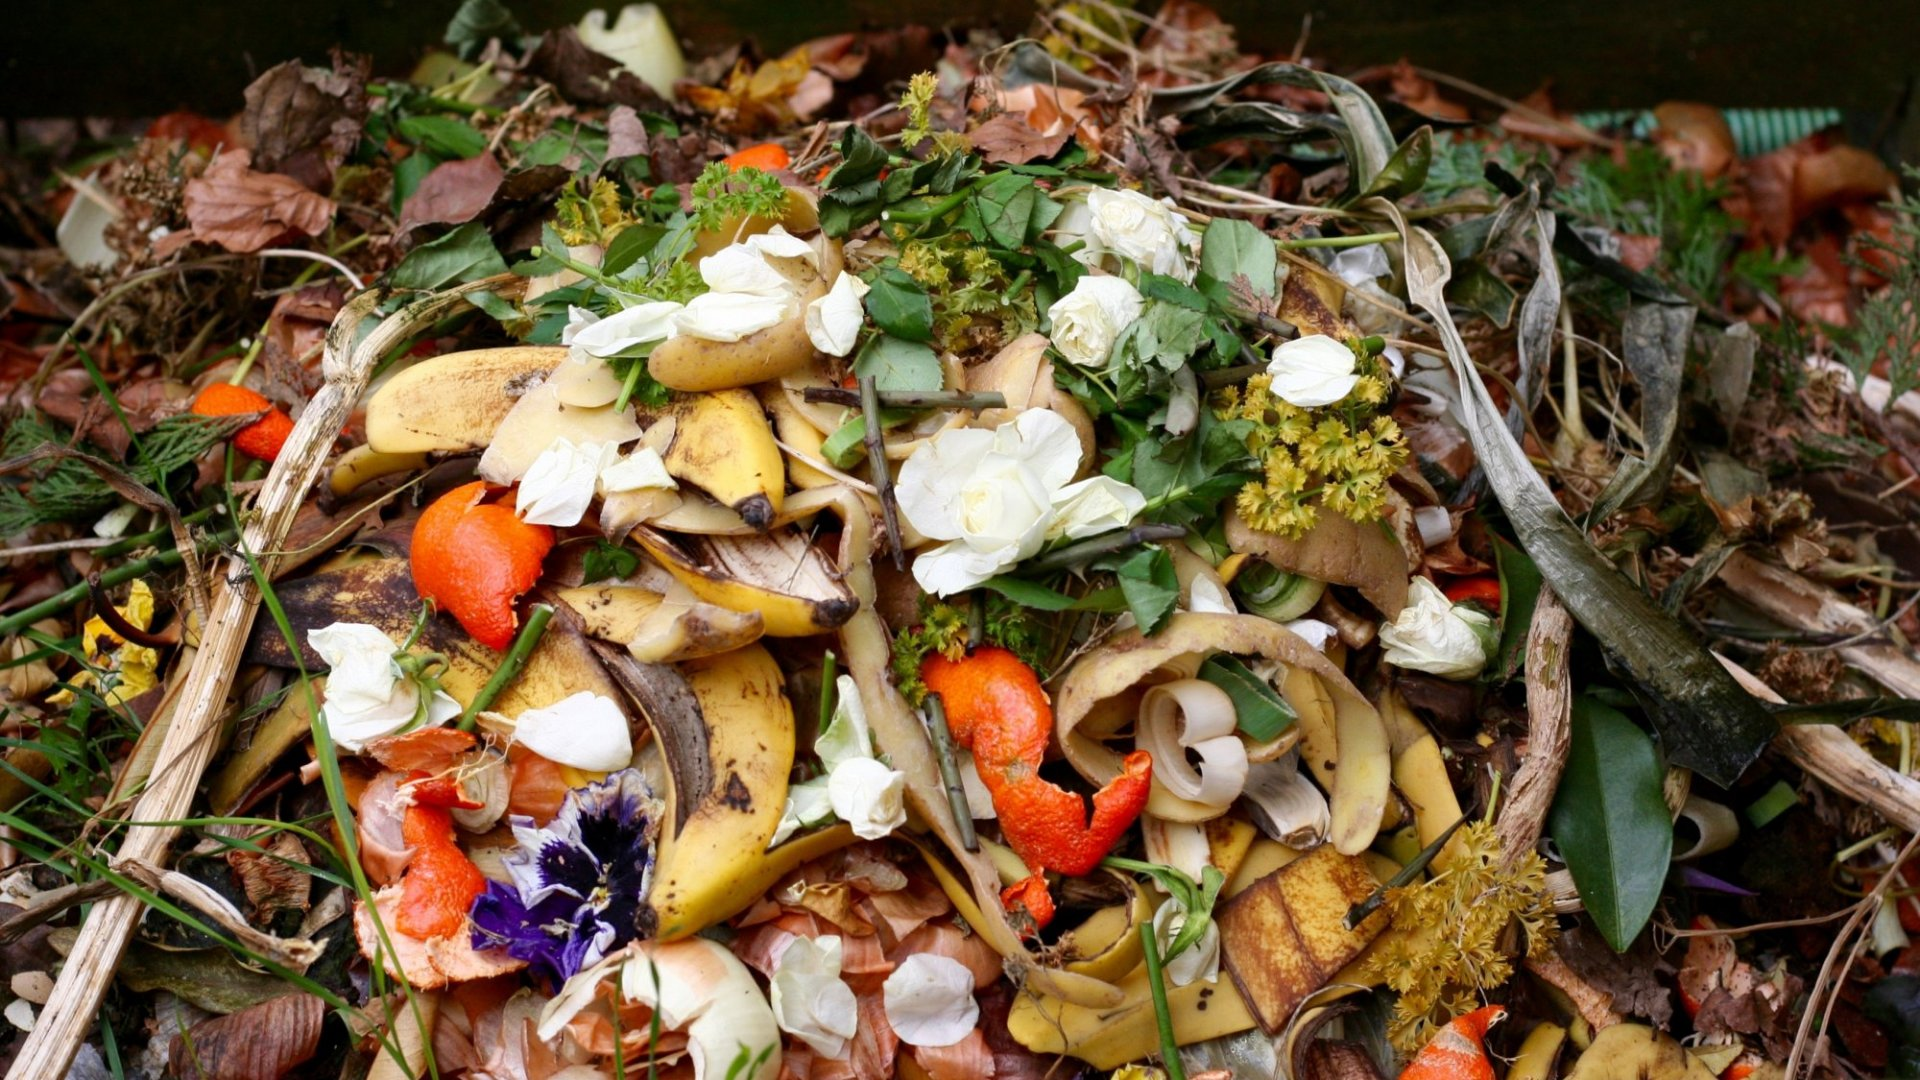 The Business Opportunity in Food Waste